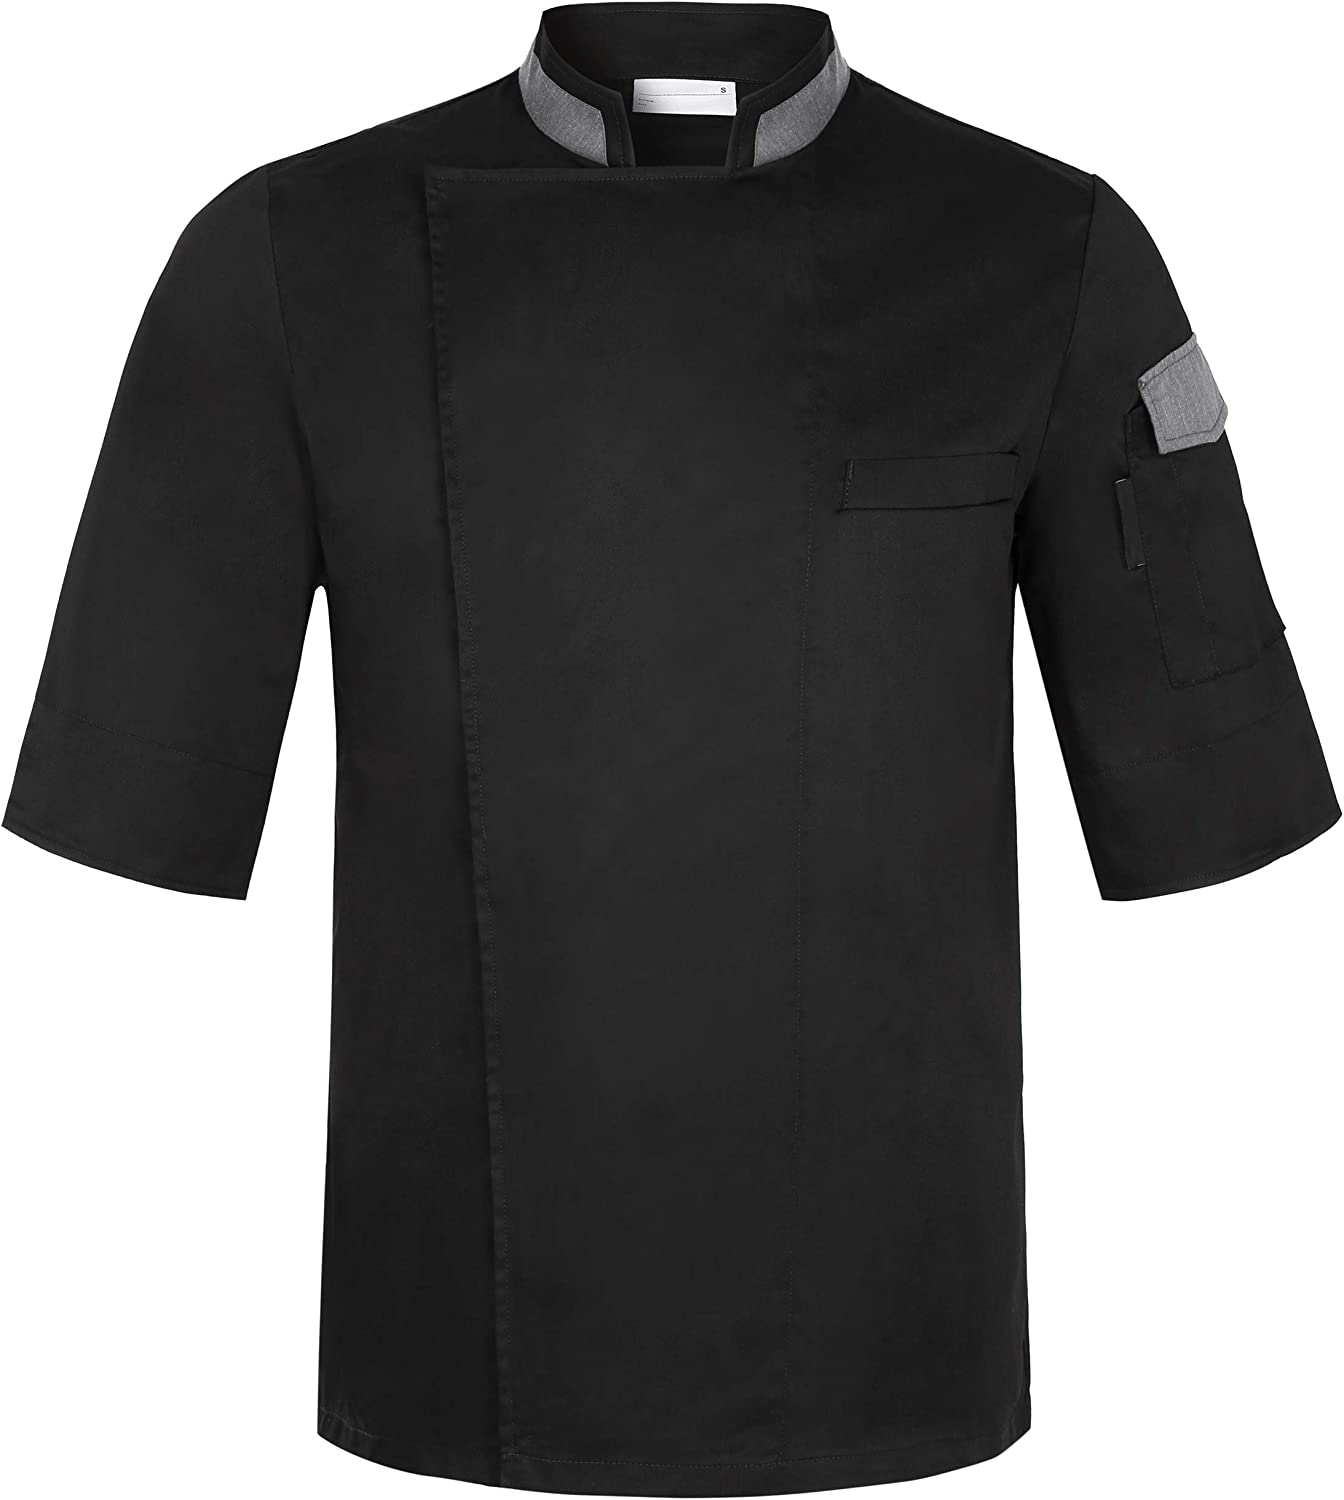 Chef Coat with Concealed Button Closure Short Sleeve Chef Jackets Work Uniform